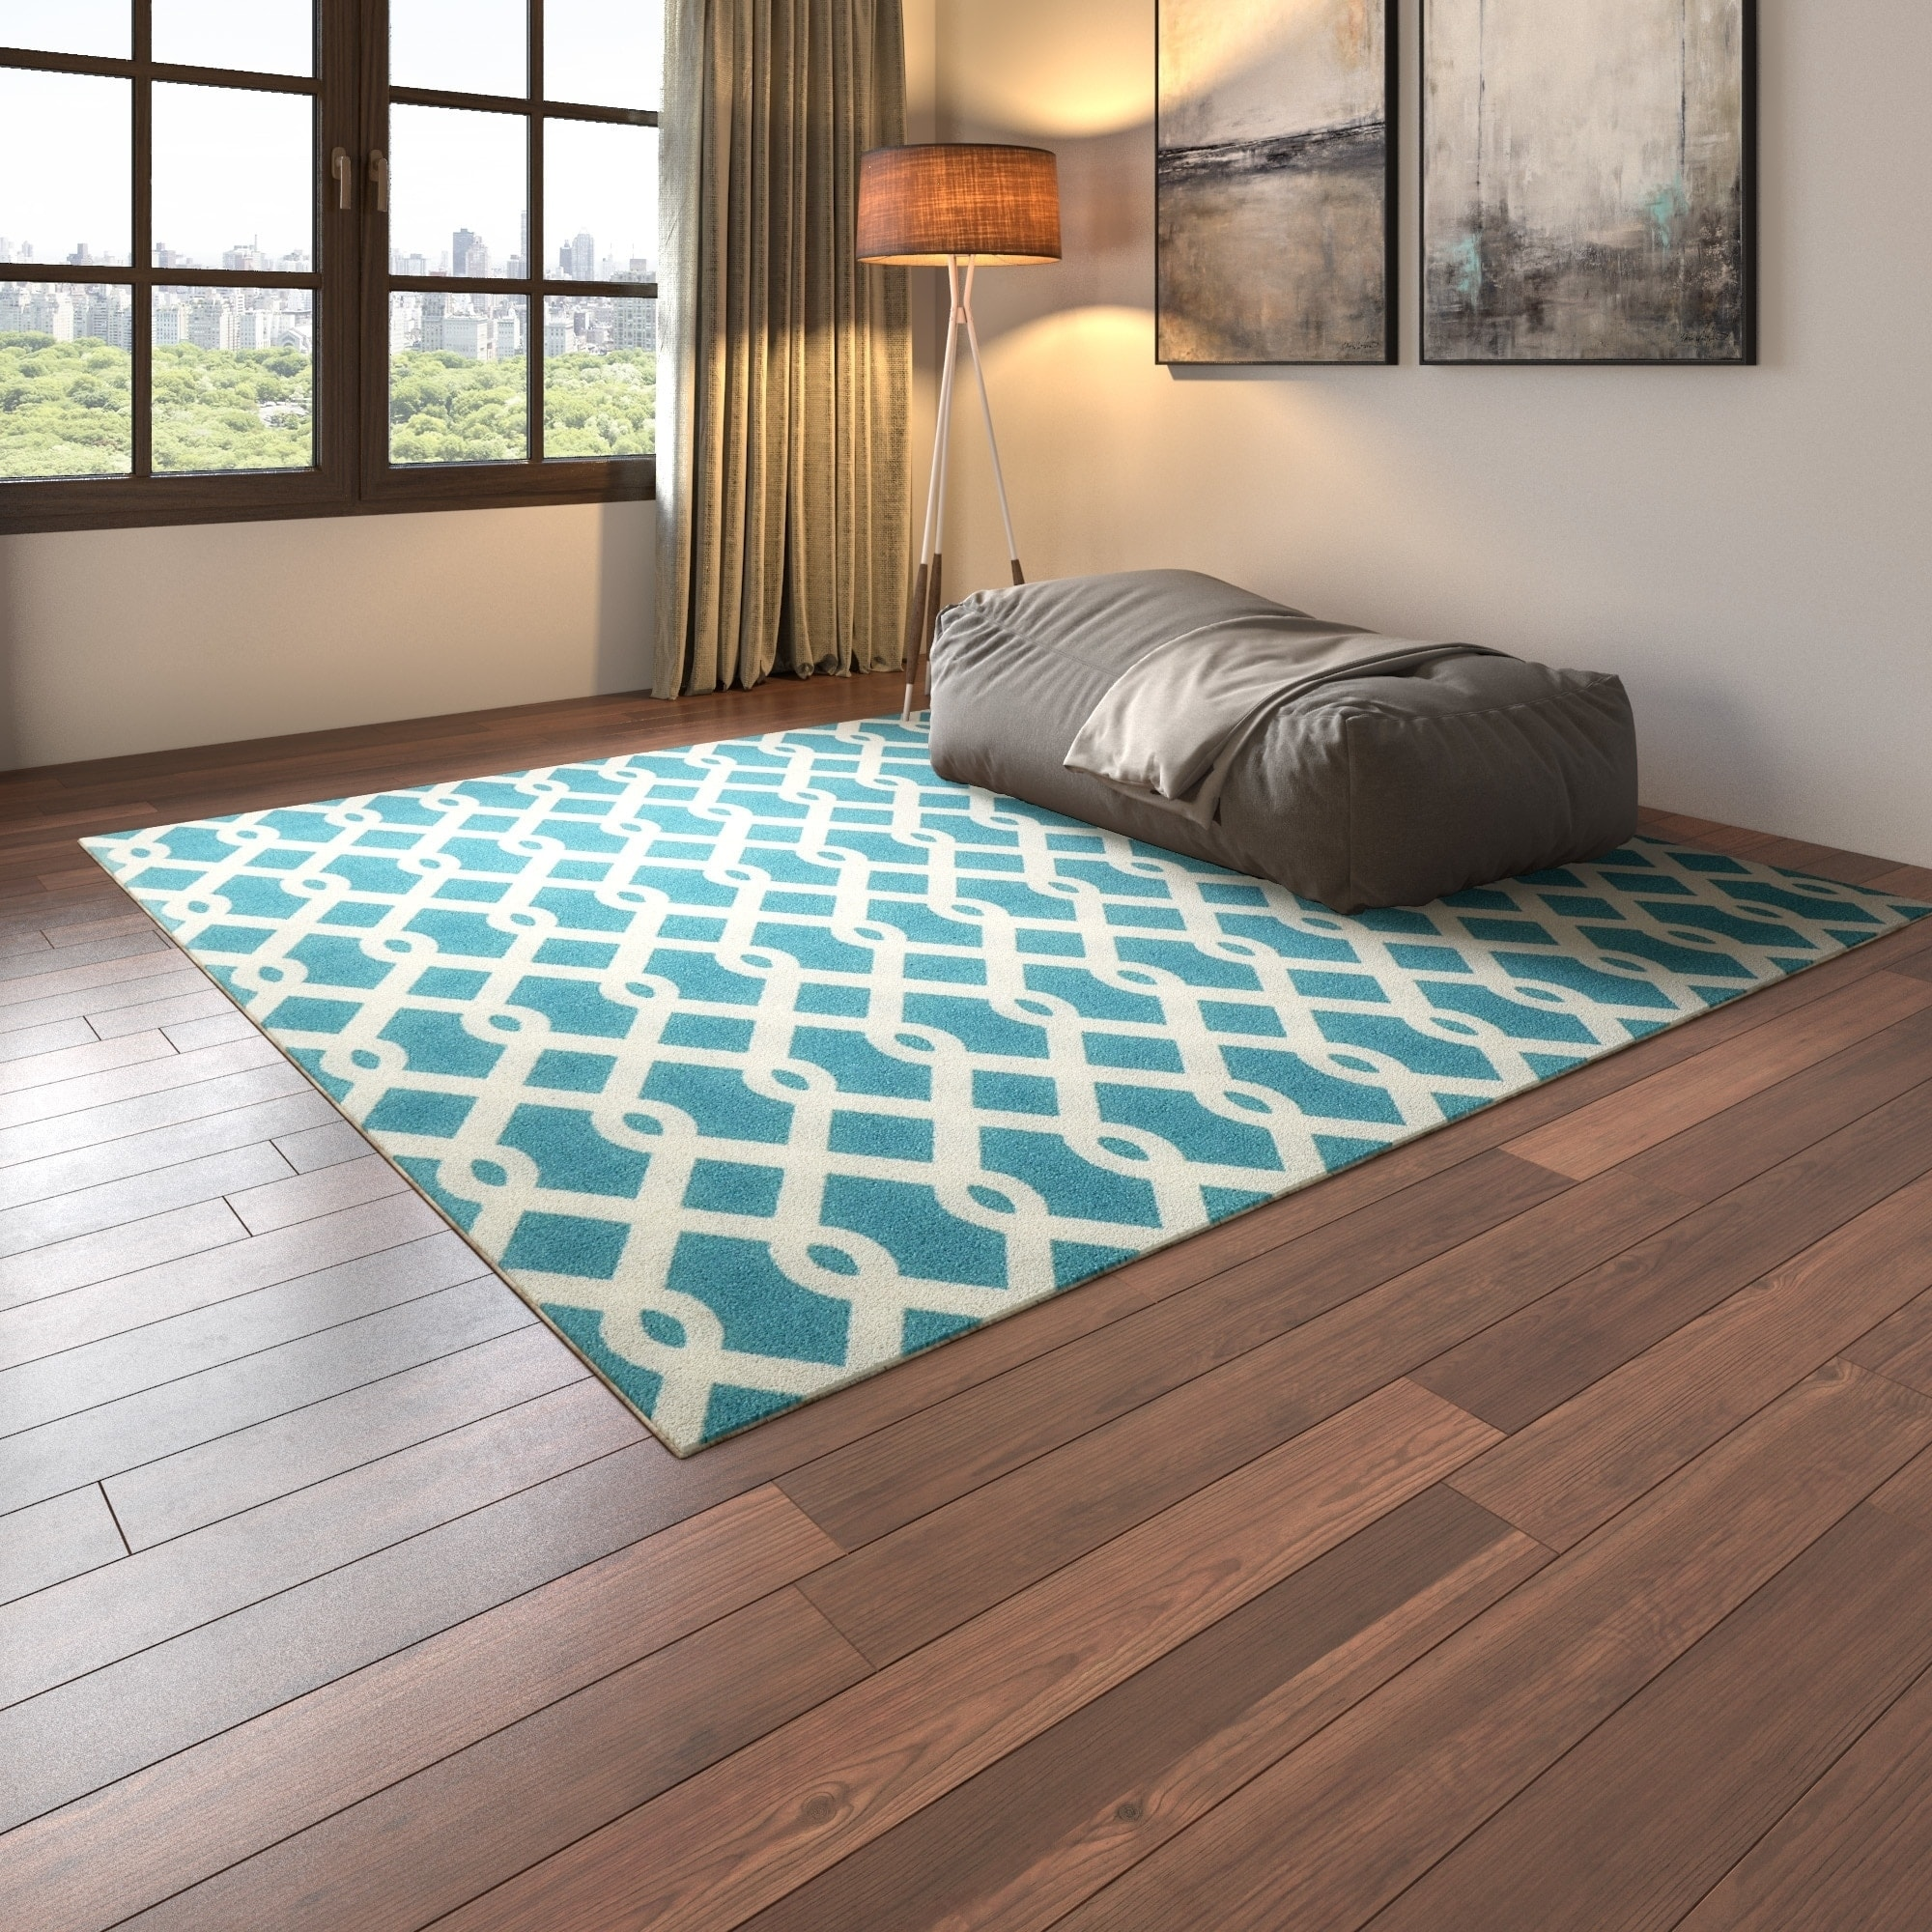 Outdoor Pool Area Rugs: Havenside Home New Castle Blue/ Ivory Poolside Indoor